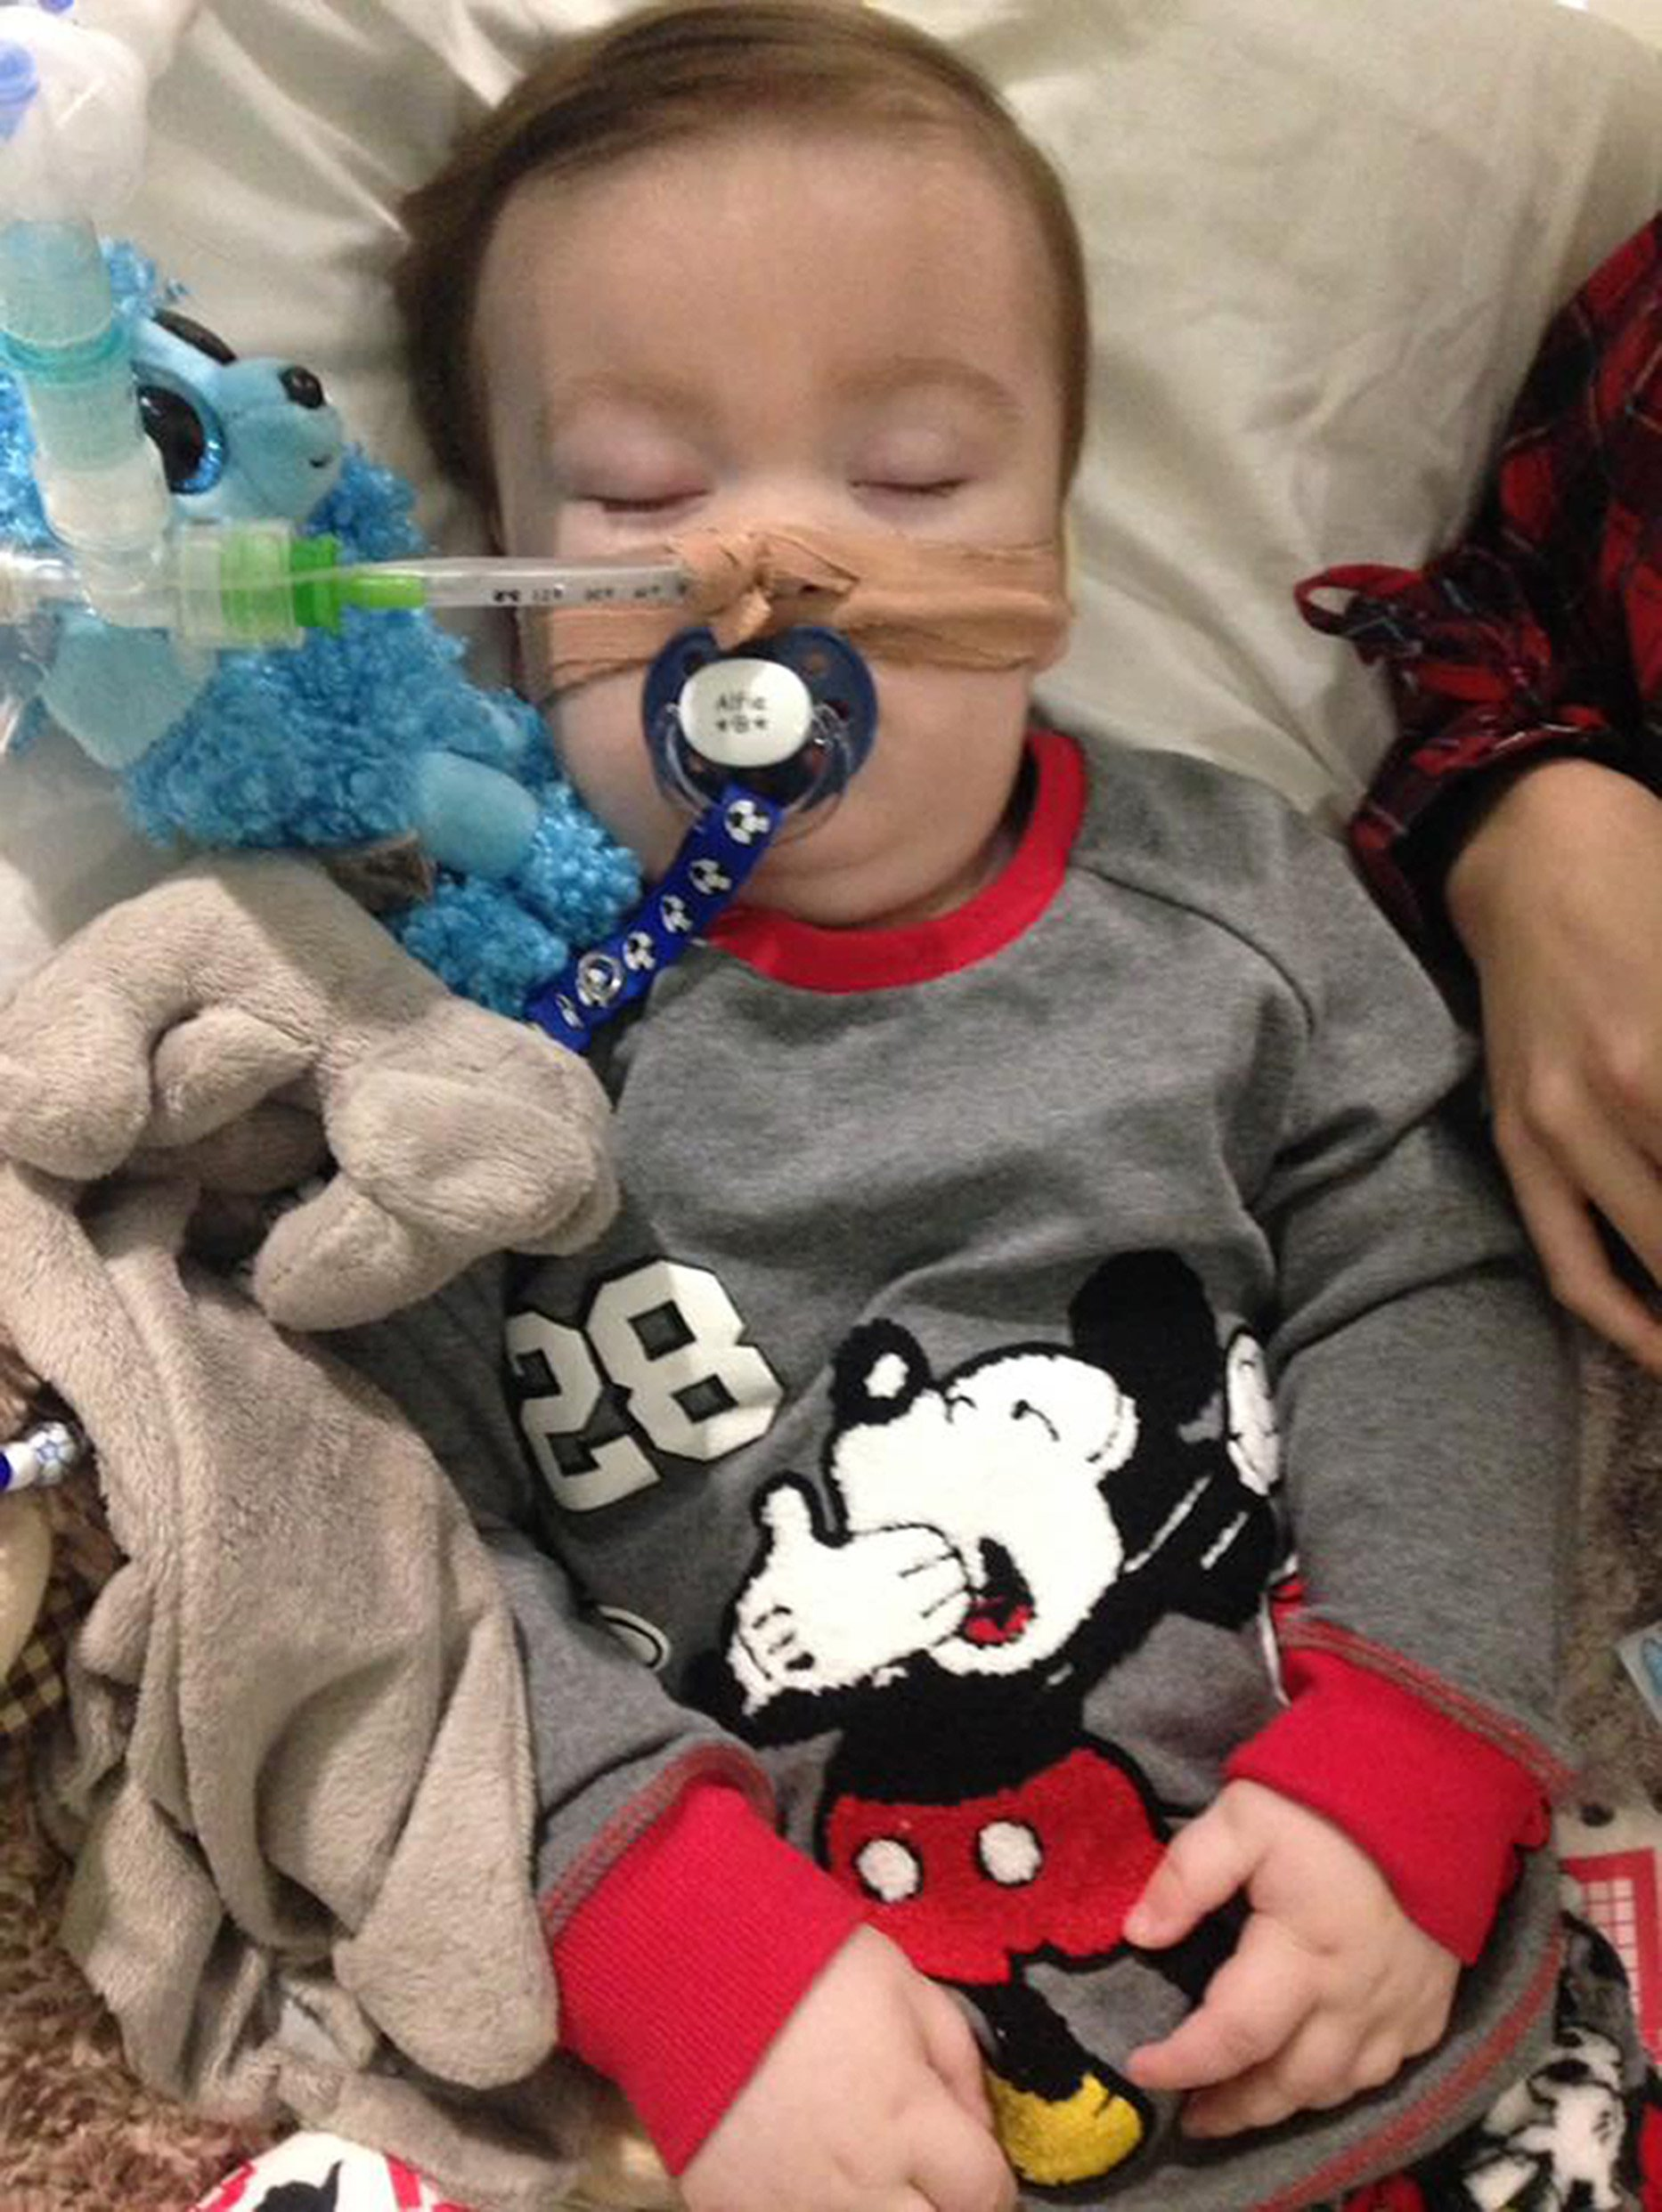 Undated family handout file photo taken with permission from the Alfies Army Official facebook page of brain-damaged boy Alfie Evans, his parents, Tom Evans and Kate James, who have been at the centre of a life-support treatment battle have lost the latest round of their legal fight after failing to persuade Supreme Court justices to consider their case for a second time. PRESS ASSOCIATION Photo. Issue date: Friday April 20, 2018. Tom Evans and Kate James, who are both in their early twenties, had made another application to the Supreme Court after losing a second fight over Alfie Evans at the Court of Appeal. See PA story COURTS Alfie. Photo credit should read: Alfies Army/Facebook/PA Wire NOTE TO EDITORS: This handout photo may only be used in for editorial reporting purposes for the contemporaneous illustration of events, things or the people in the image or facts mentioned in the caption. Reuse of the picture may require further permission from the copyright holder.